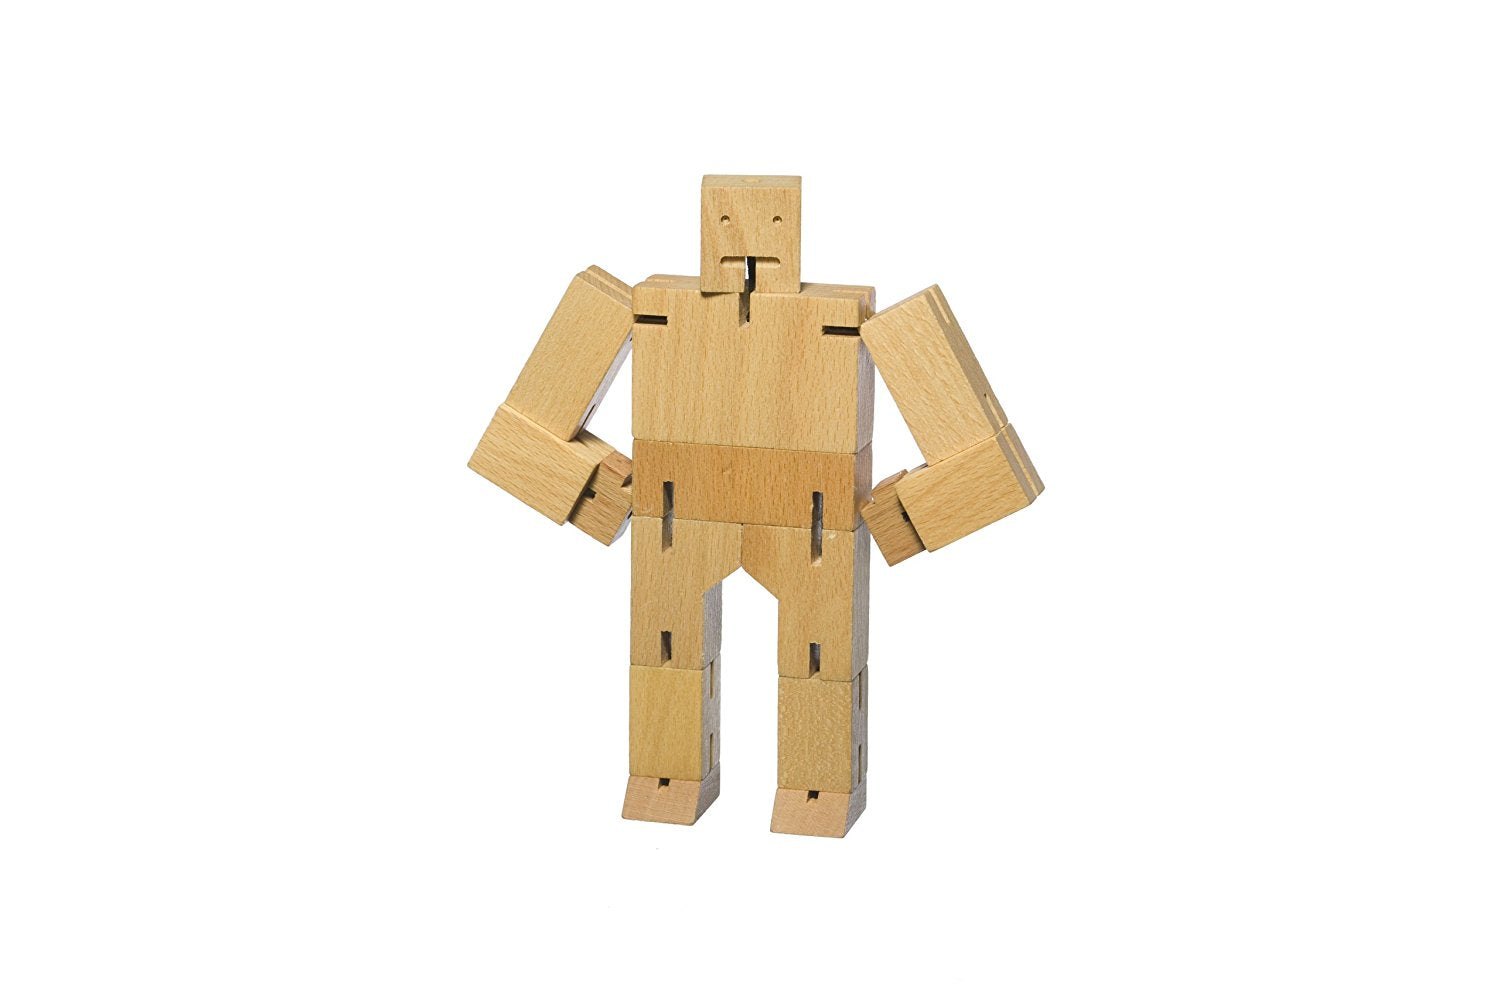 Cubebot Wooden Puzzle Robot toy